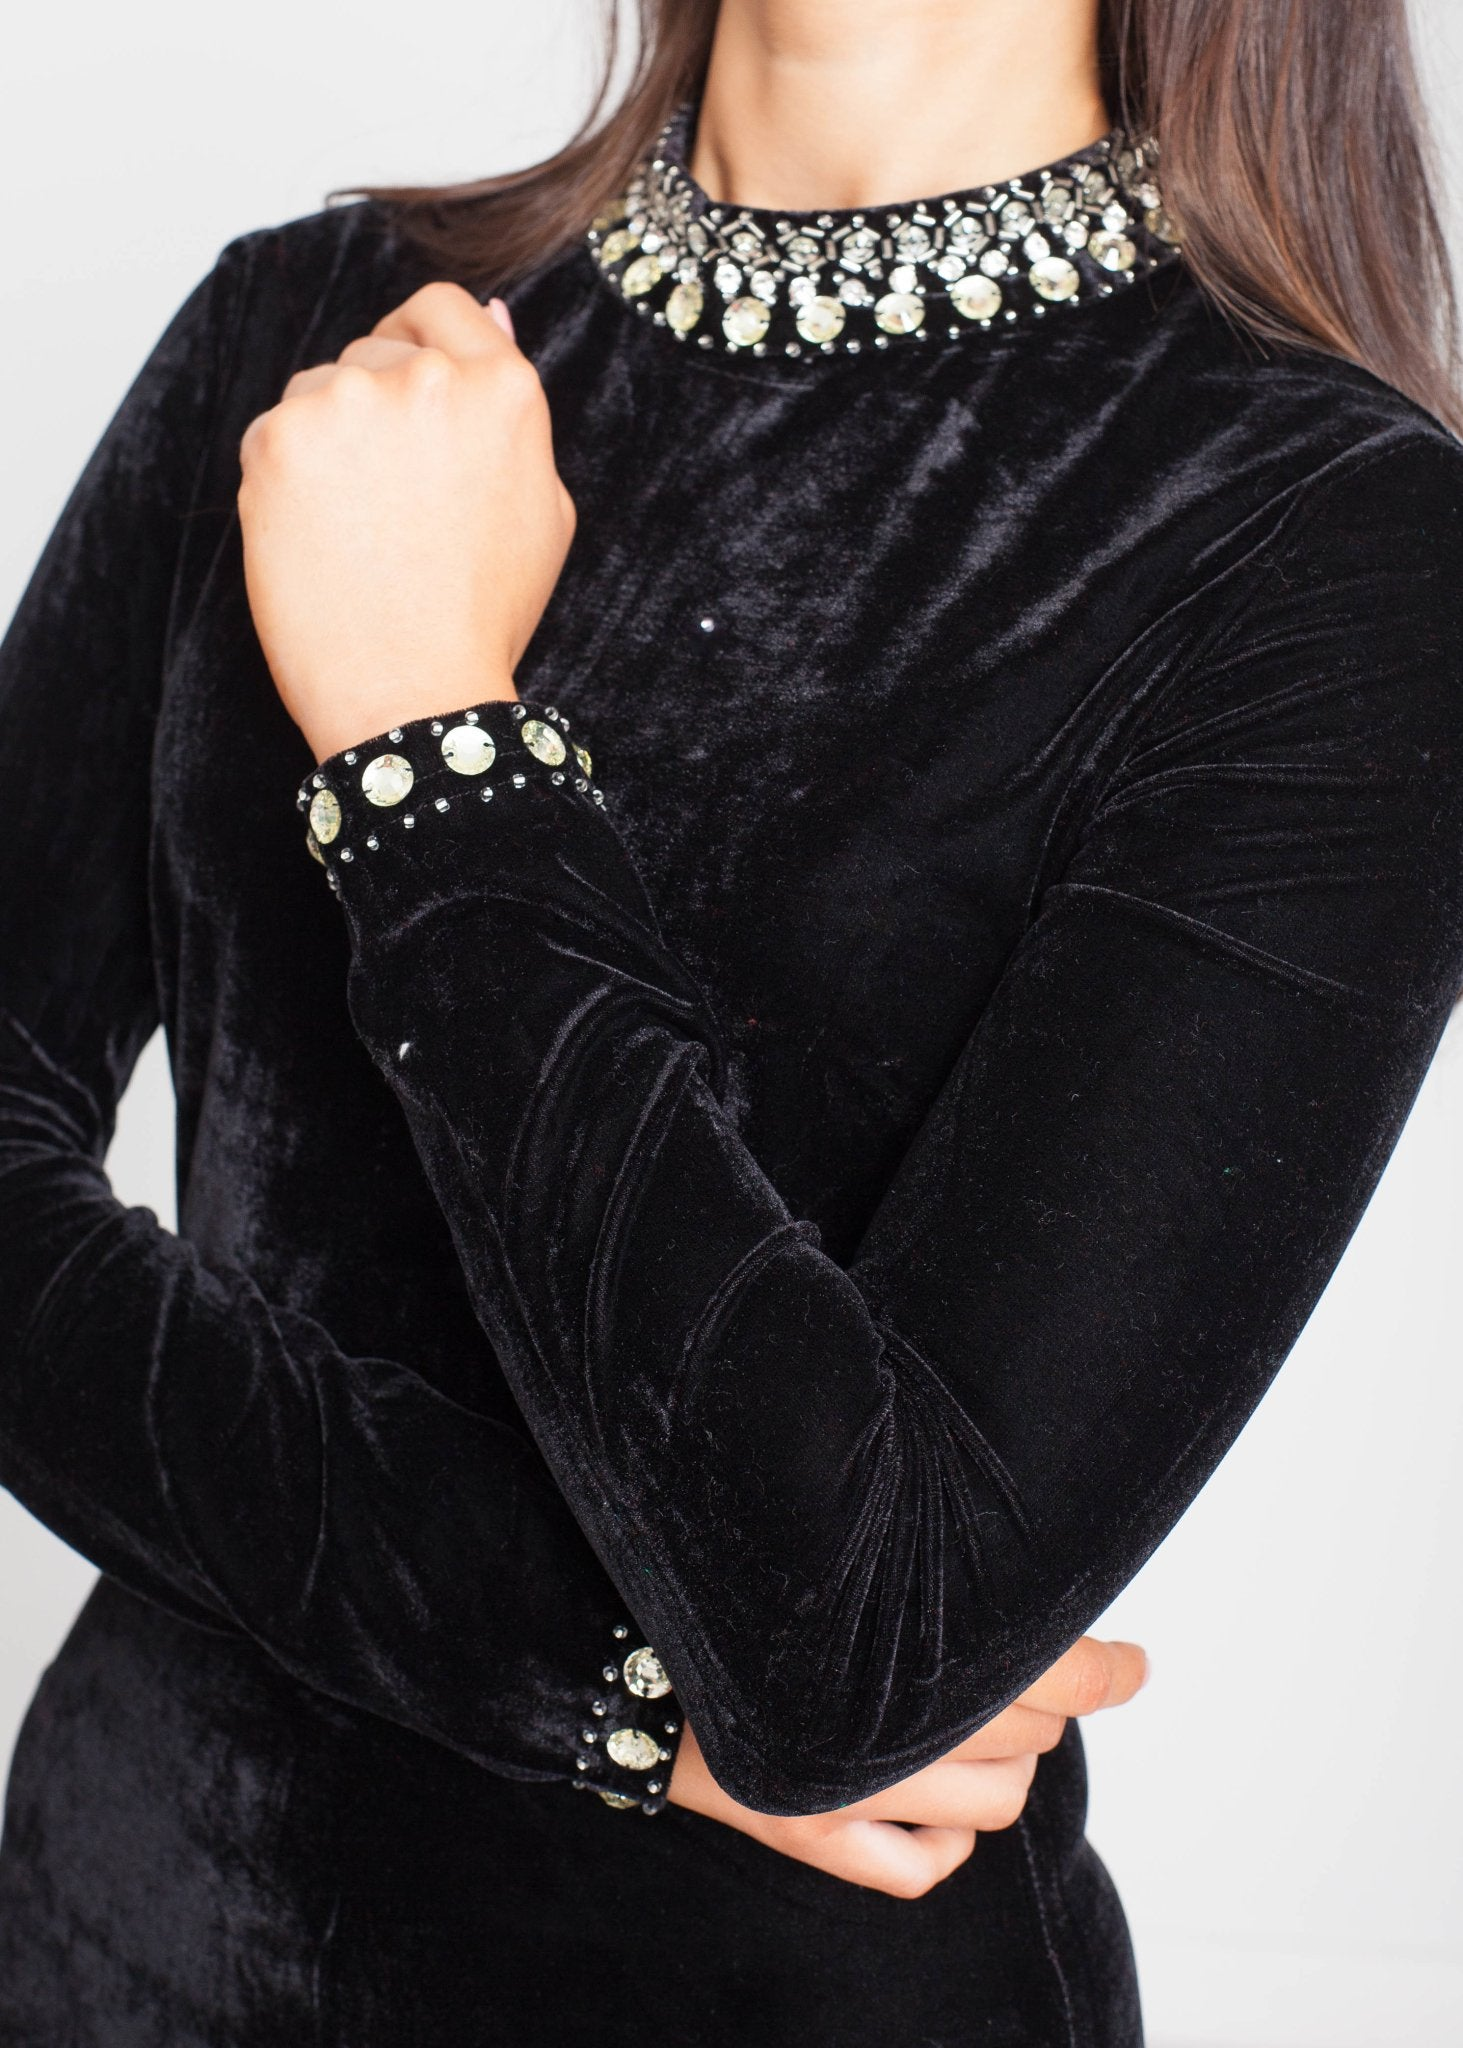 Priya Embellished Dress In Black Velvet - The Walk in Wardrobe